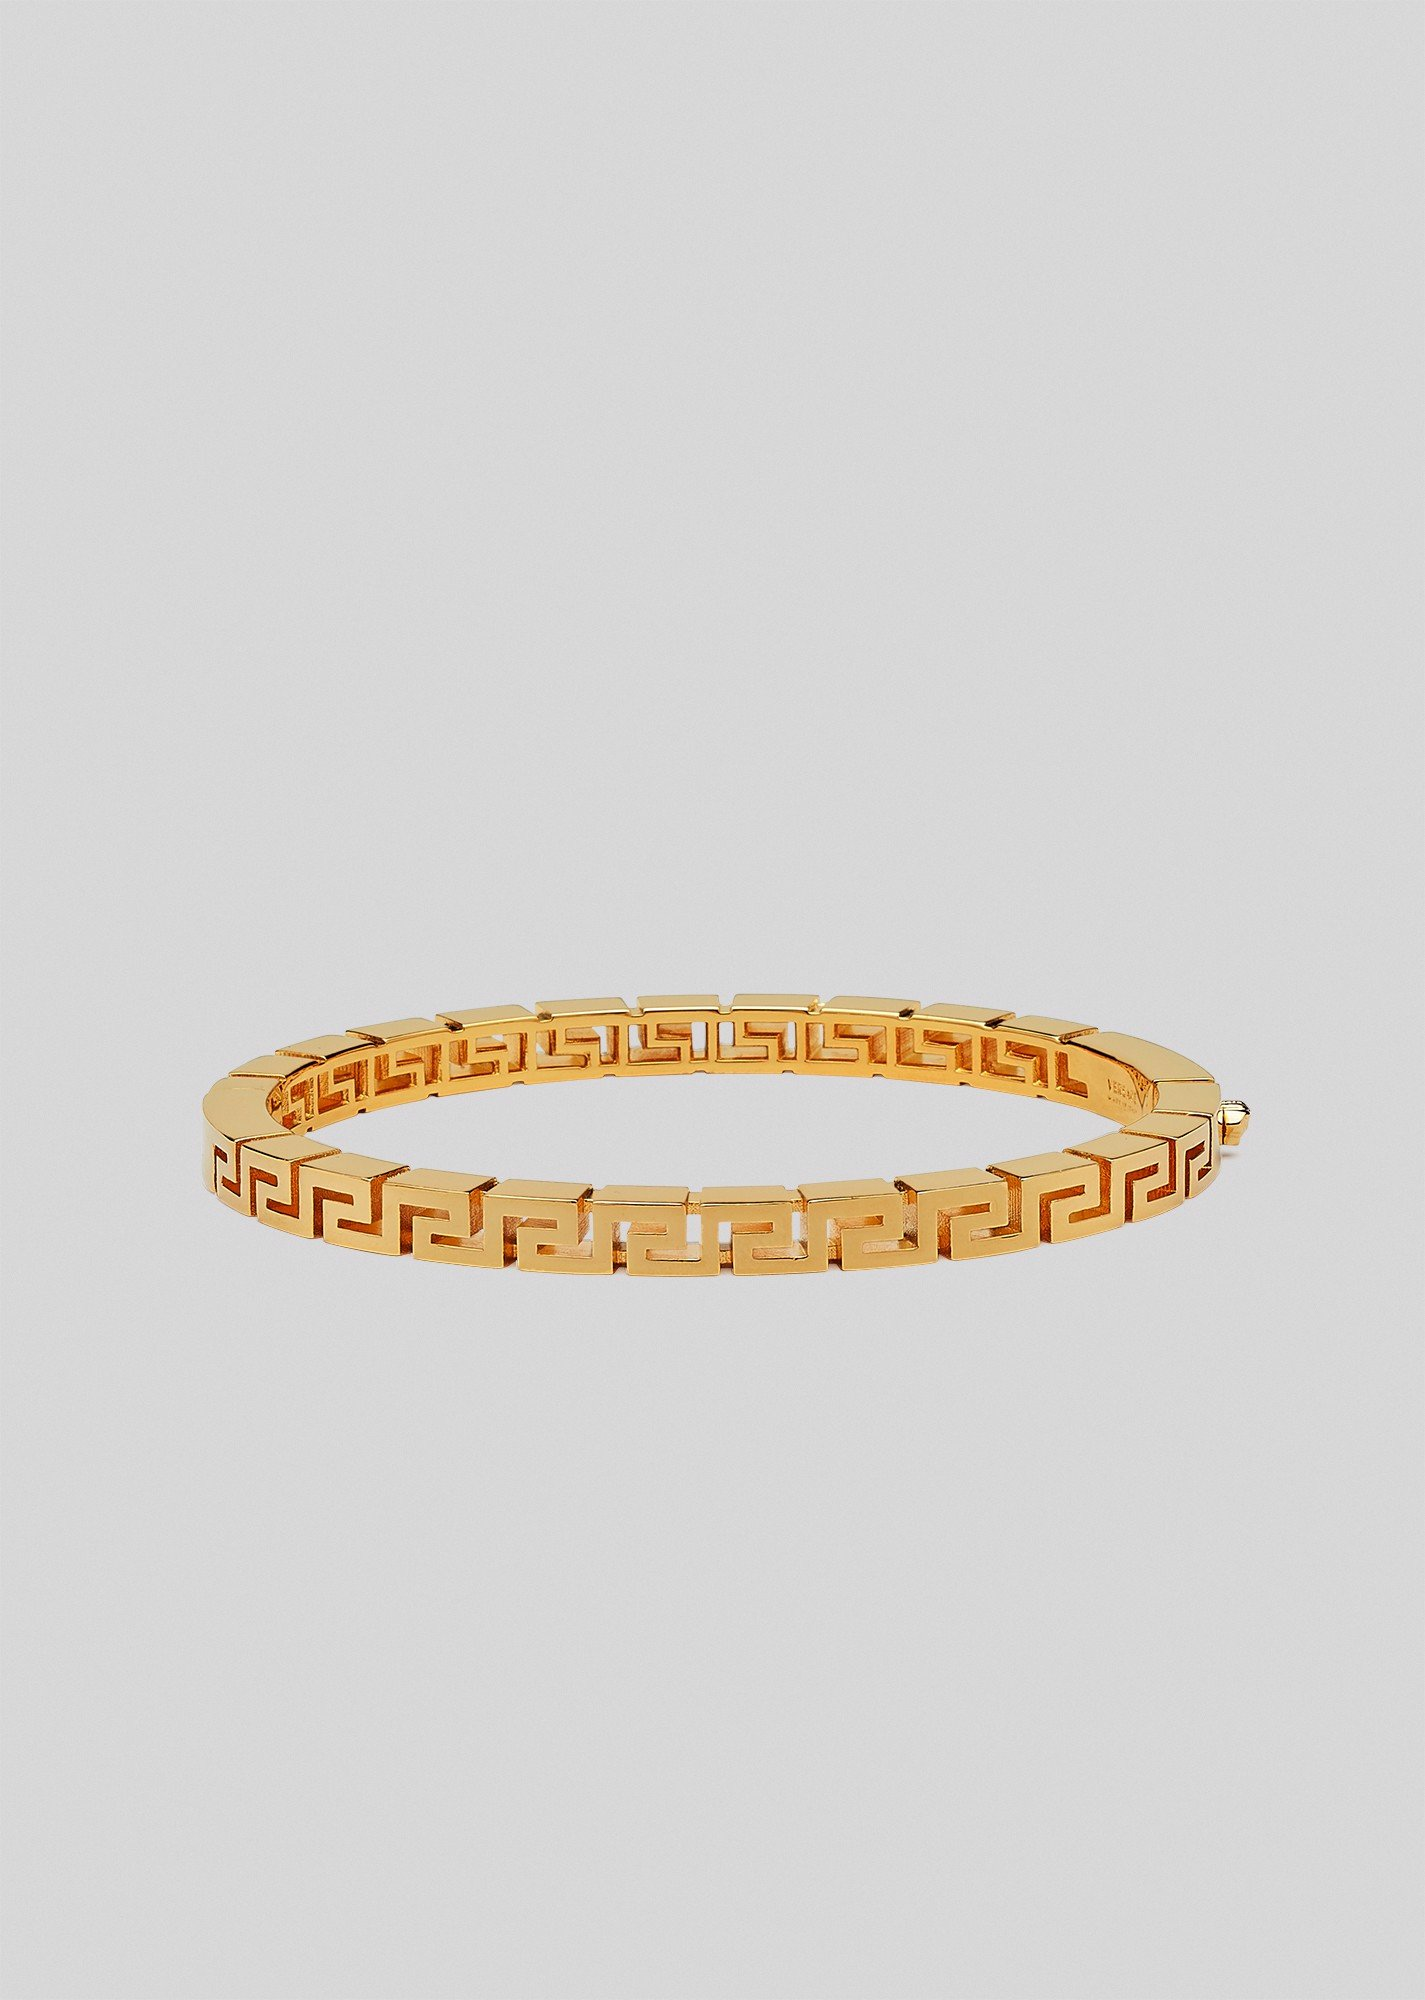 Meander Bangle Bracelet (Gold)